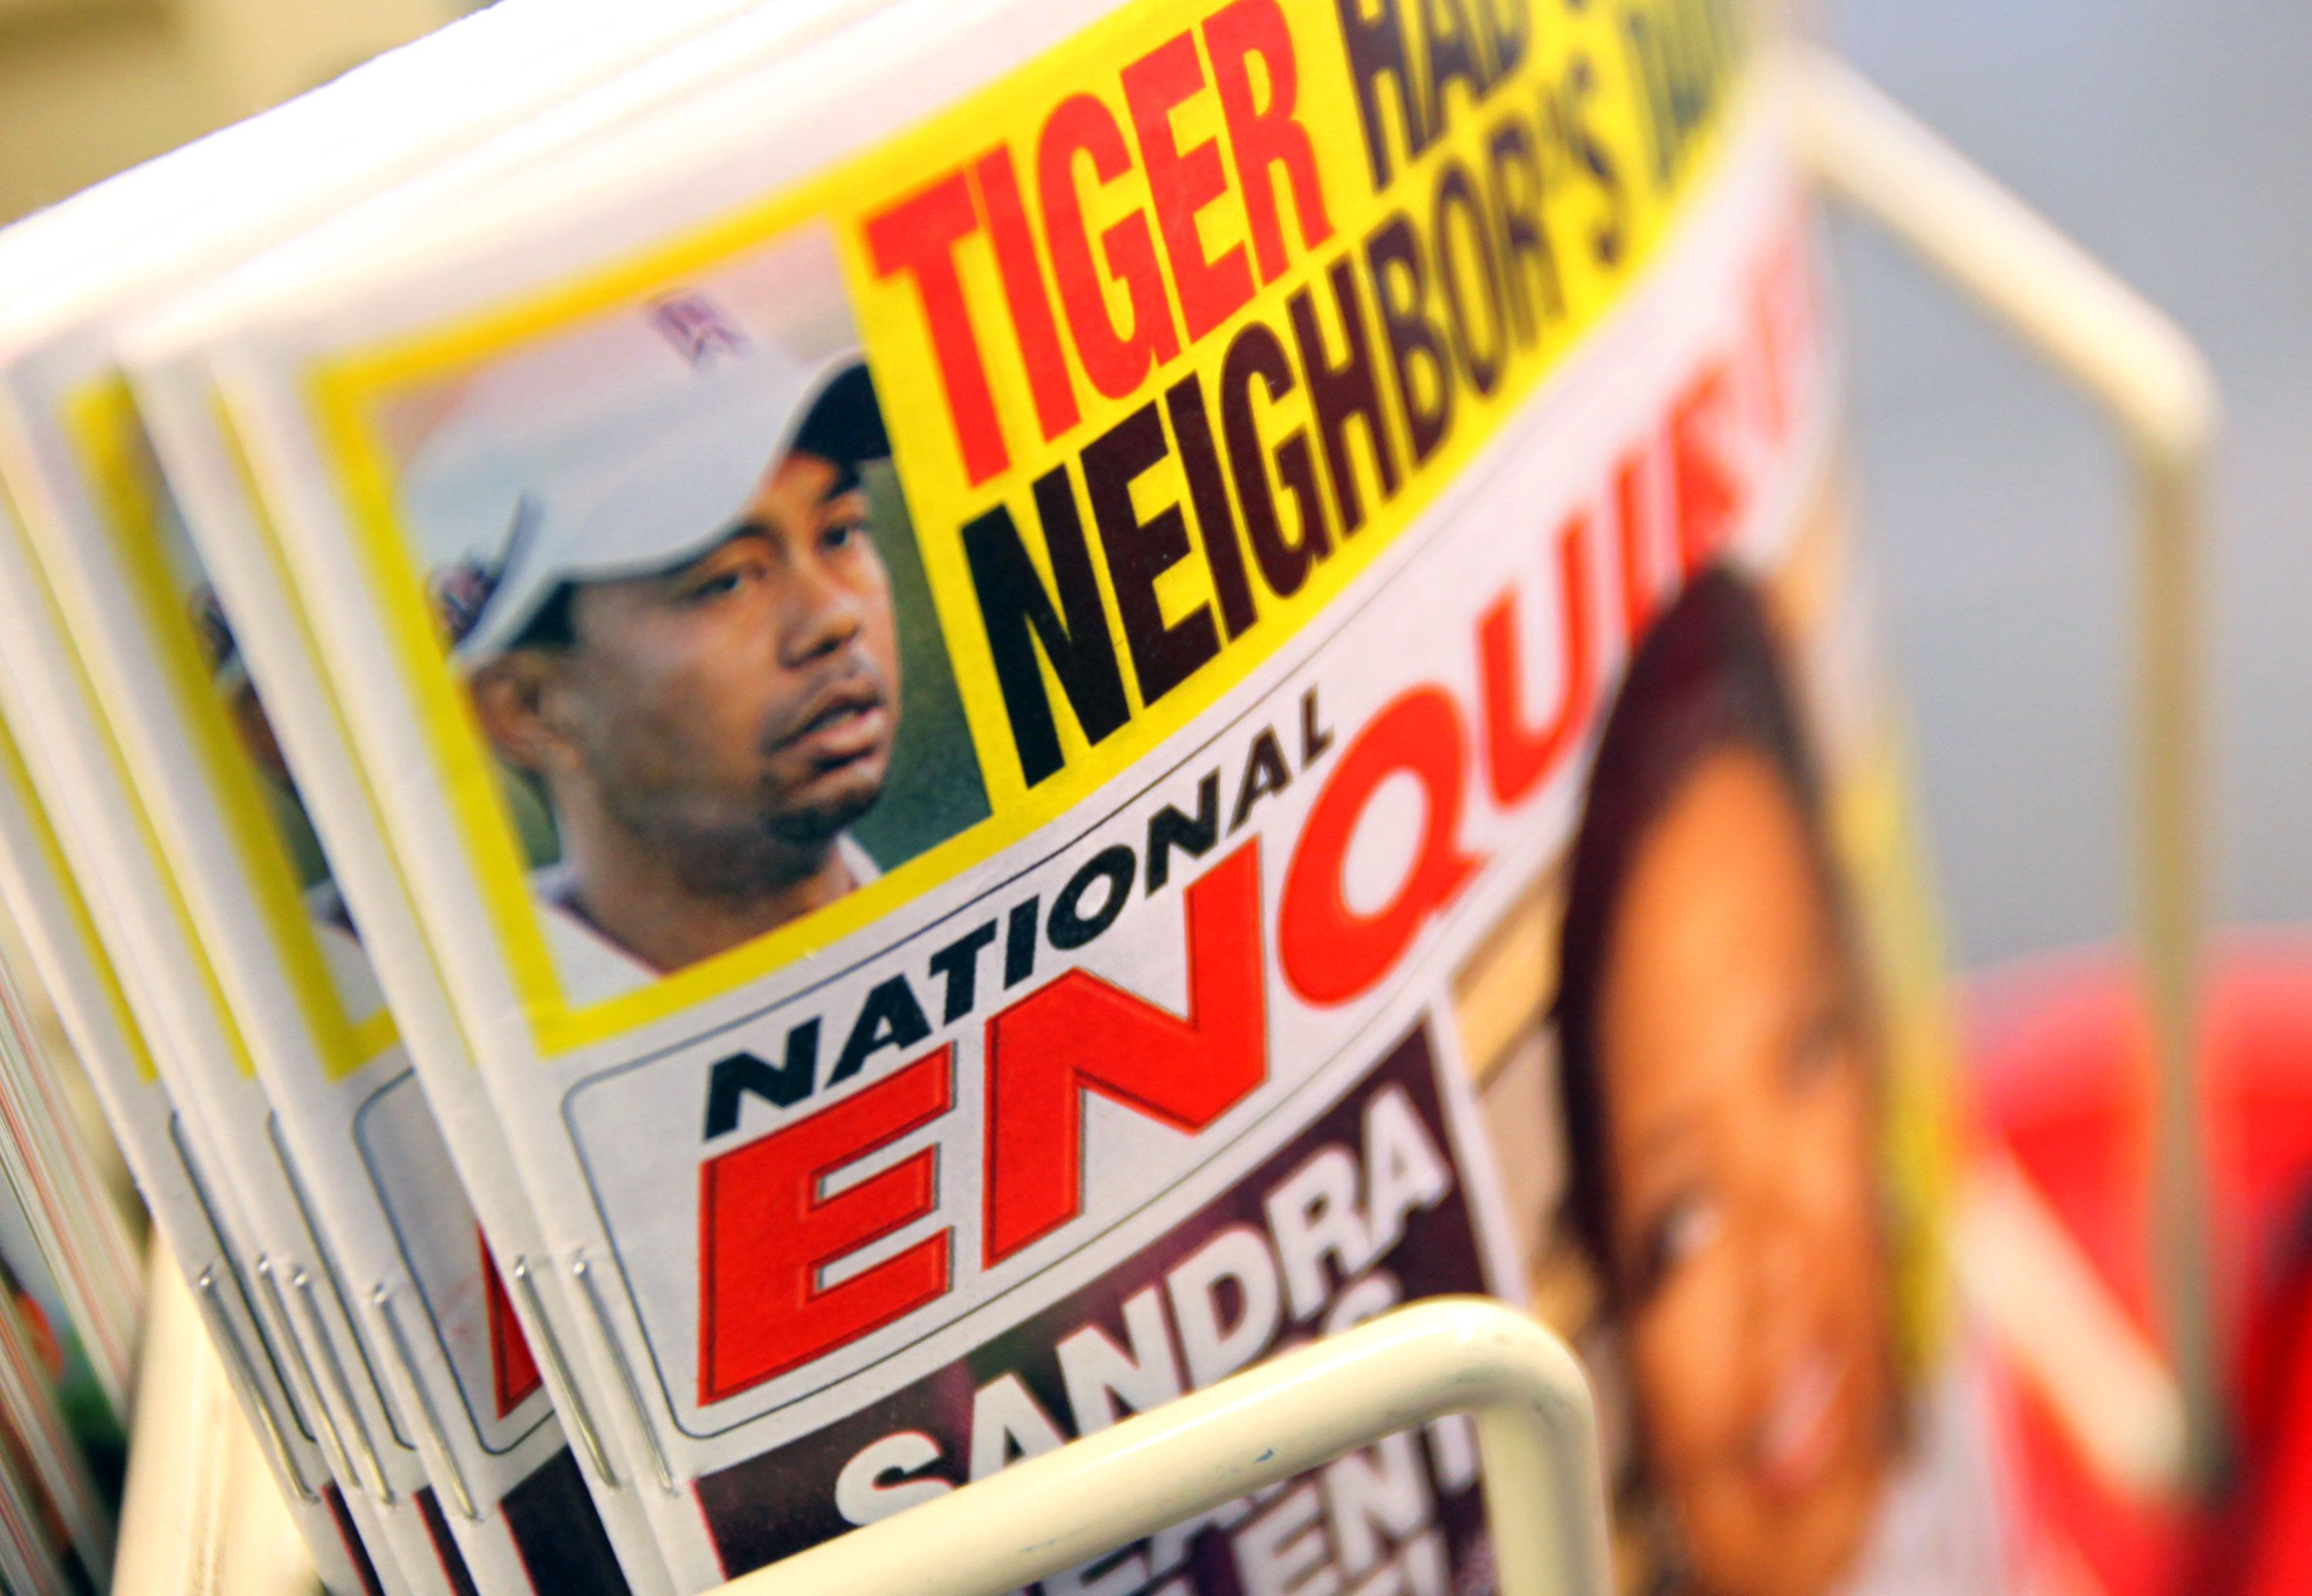 National Enquirer tabloid newspapers are displayed in a store in Chicago, Illinois, U.S., on Monday, April 12, 2010. The runup to the Pulitzer Prize awards was rife with speculation that the National Enquirer could win a Pulitzer for revealing that former Democratic presidential candidate John Edwards had an affair, but the tabloid ended up not winning. Photographer: Tim Boyle/Bloomberg via Getty Images